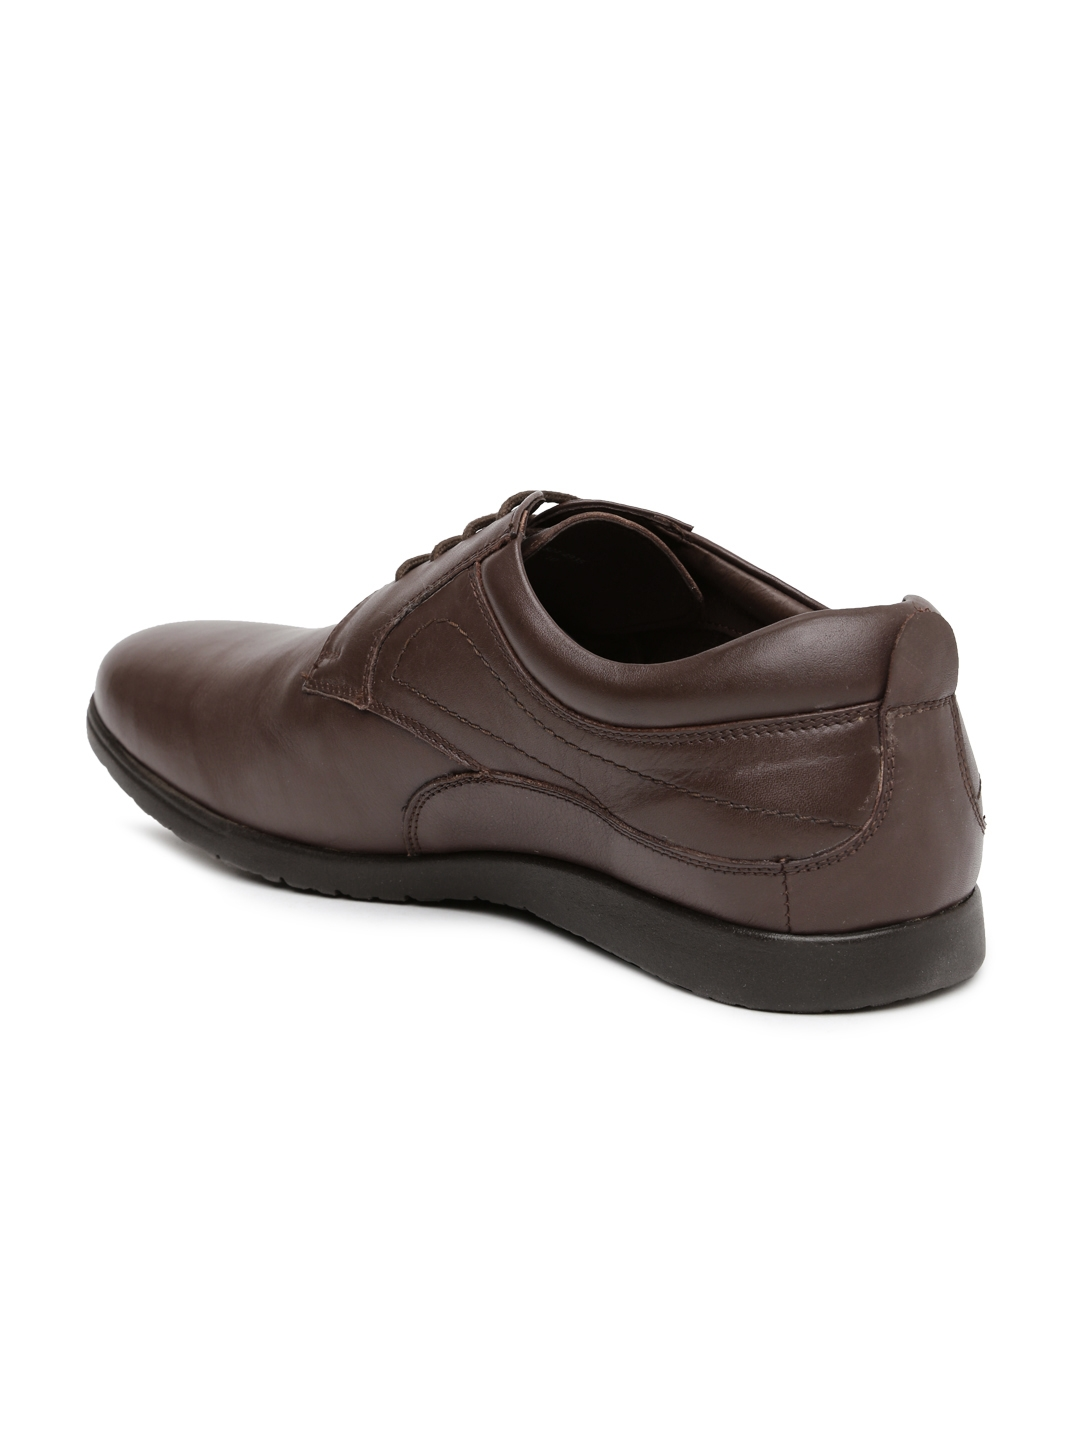 7160bd409e9 Buy Hush Puppies Men Brown Leather Derby Shoes - Formal Shoes for ...